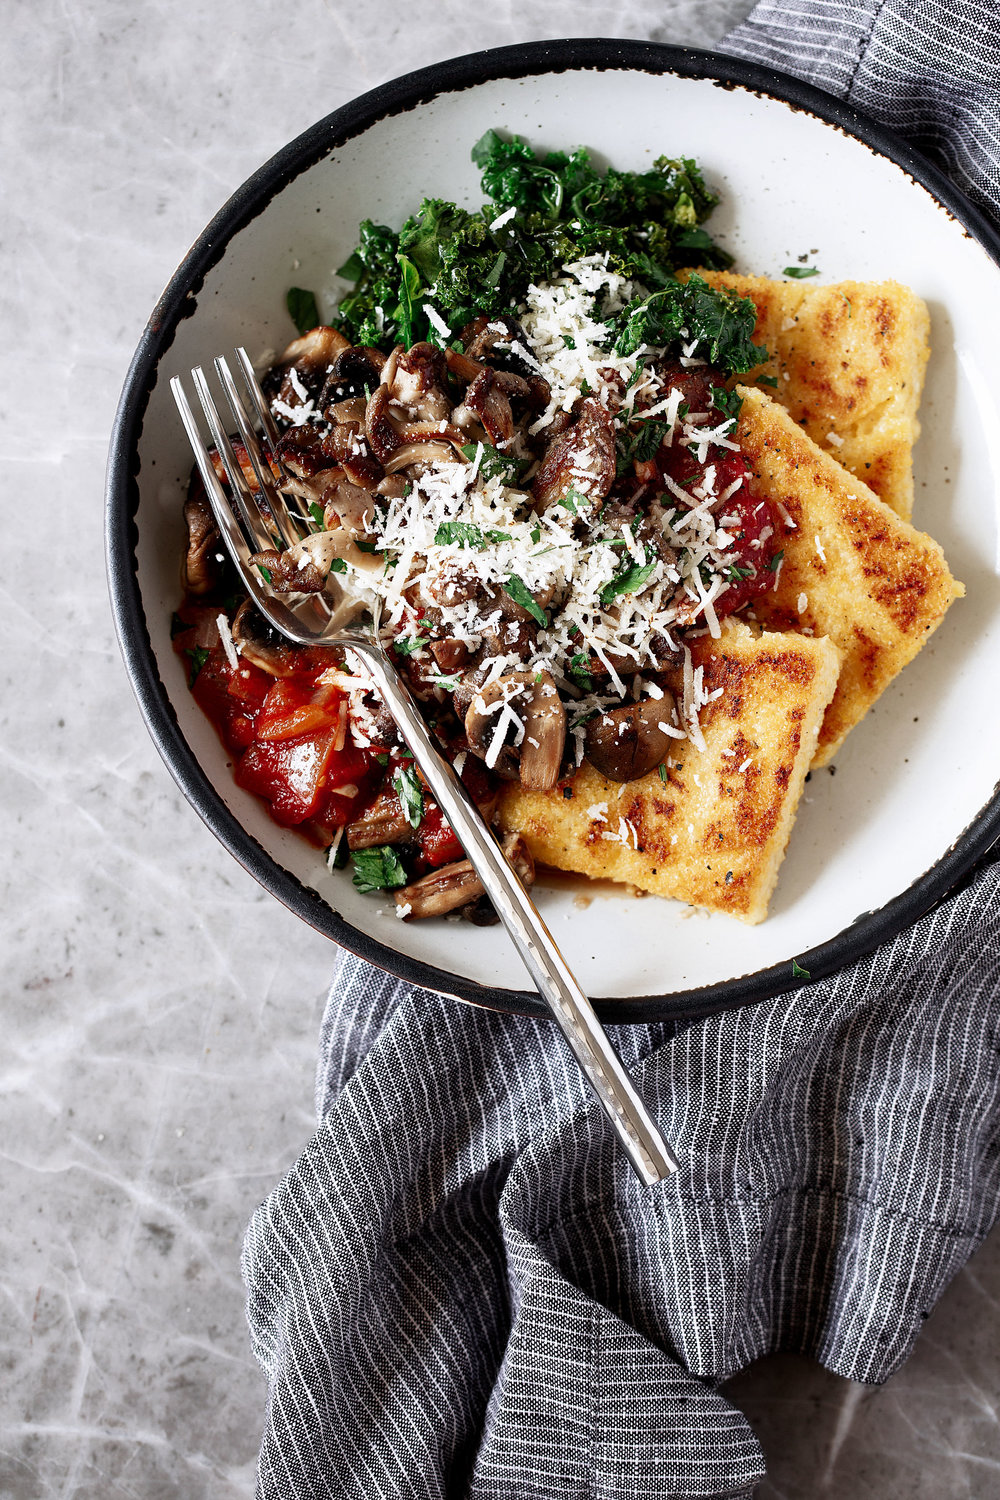 Crispy Polenta with Spicy Tomato Sauce, Sautéed Kale & Mushroomsrecipe from cooking with cocktail rings